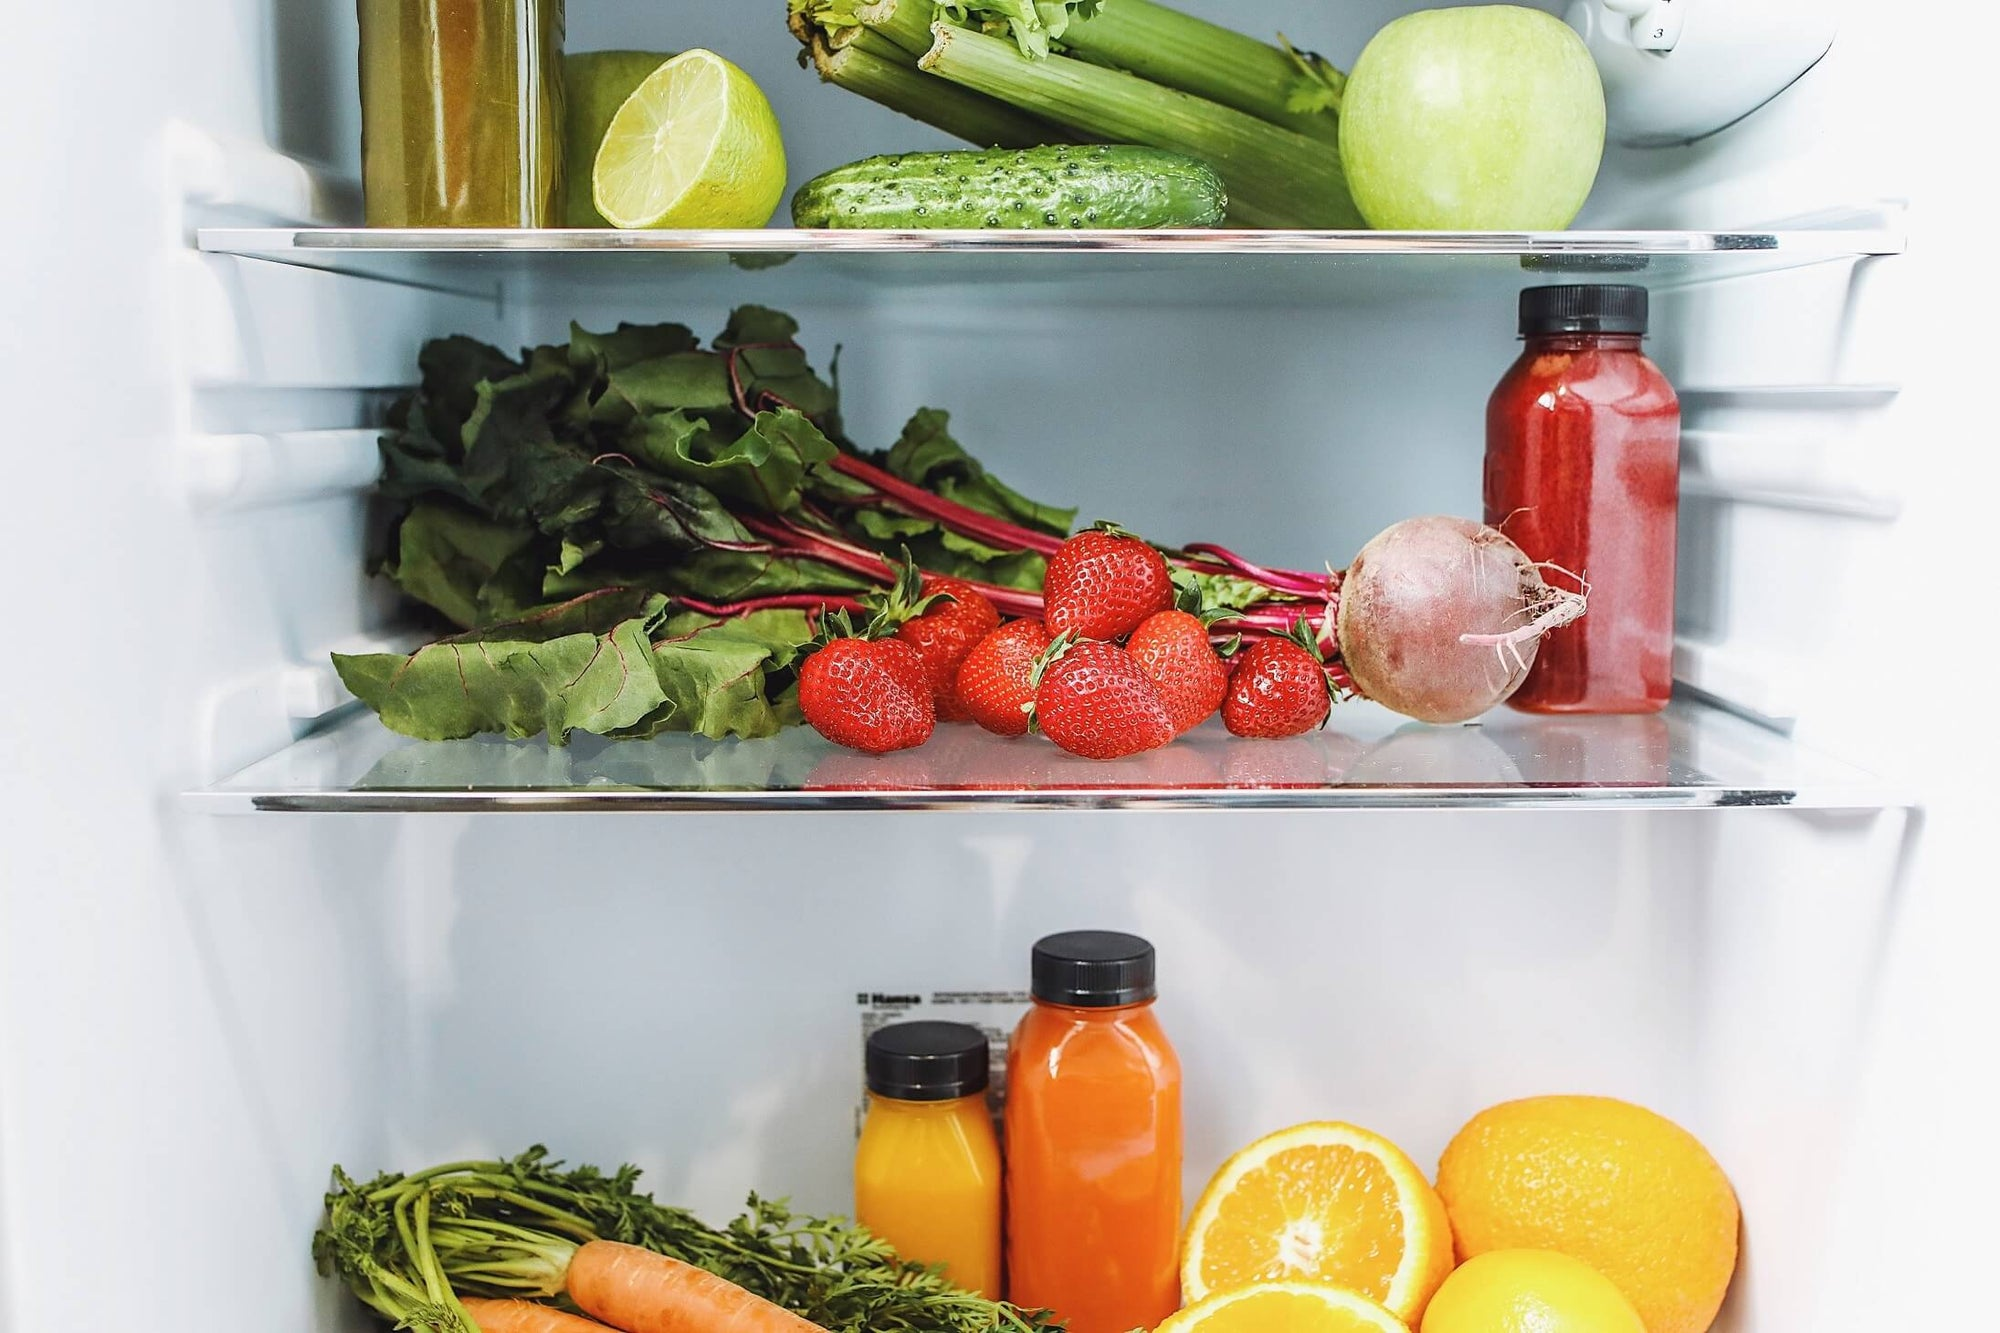 Healthy foods for bone health stocked in the fridge